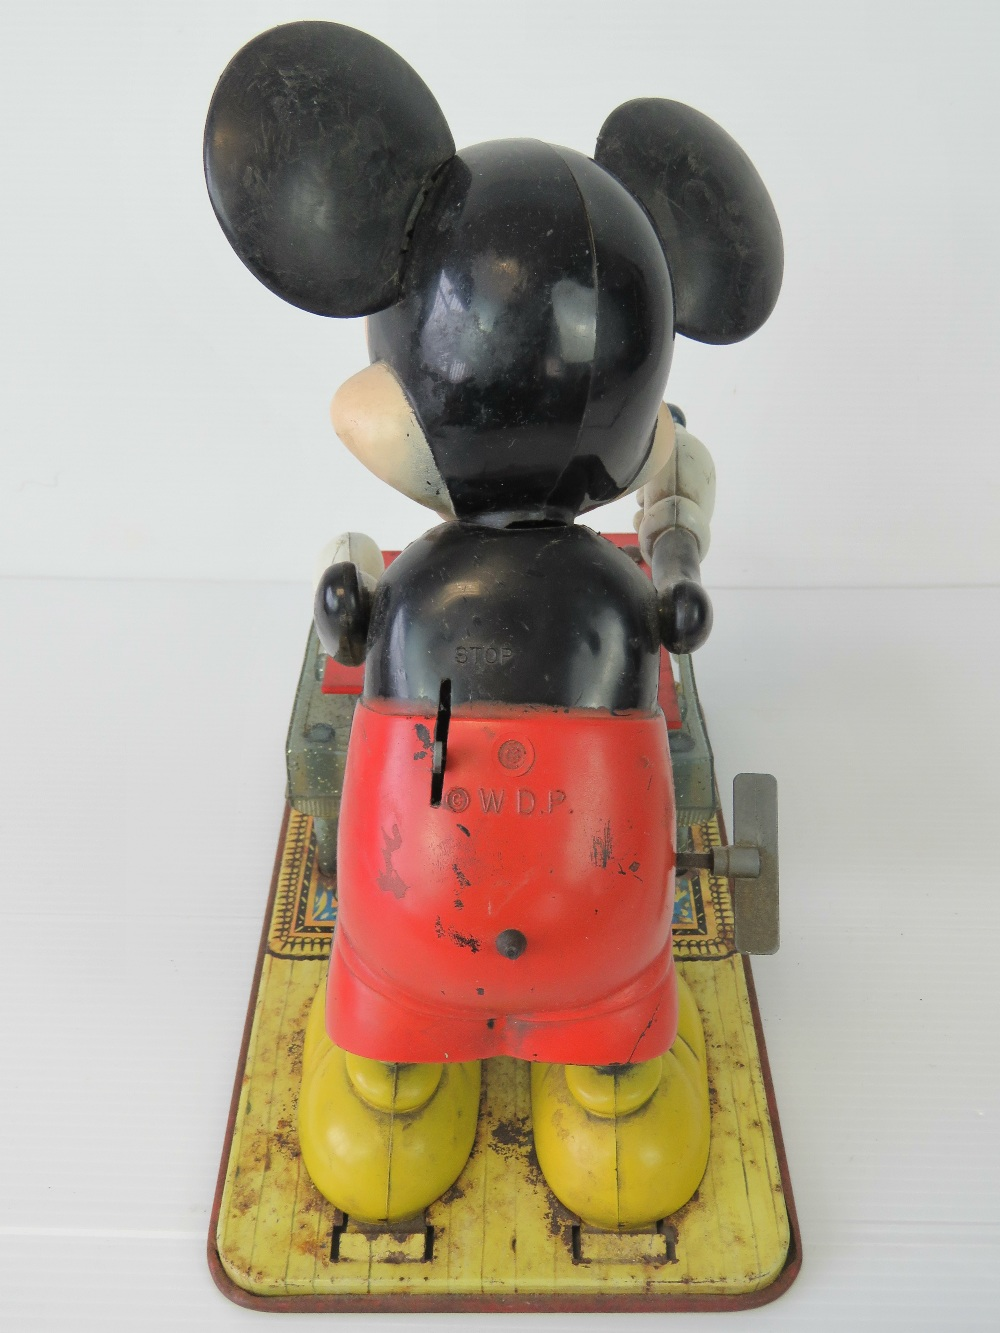 Lot 475 - A vintage wind-up clockwork Mickey Mouse playing xylophone by Walt Disney Productions c1950s,